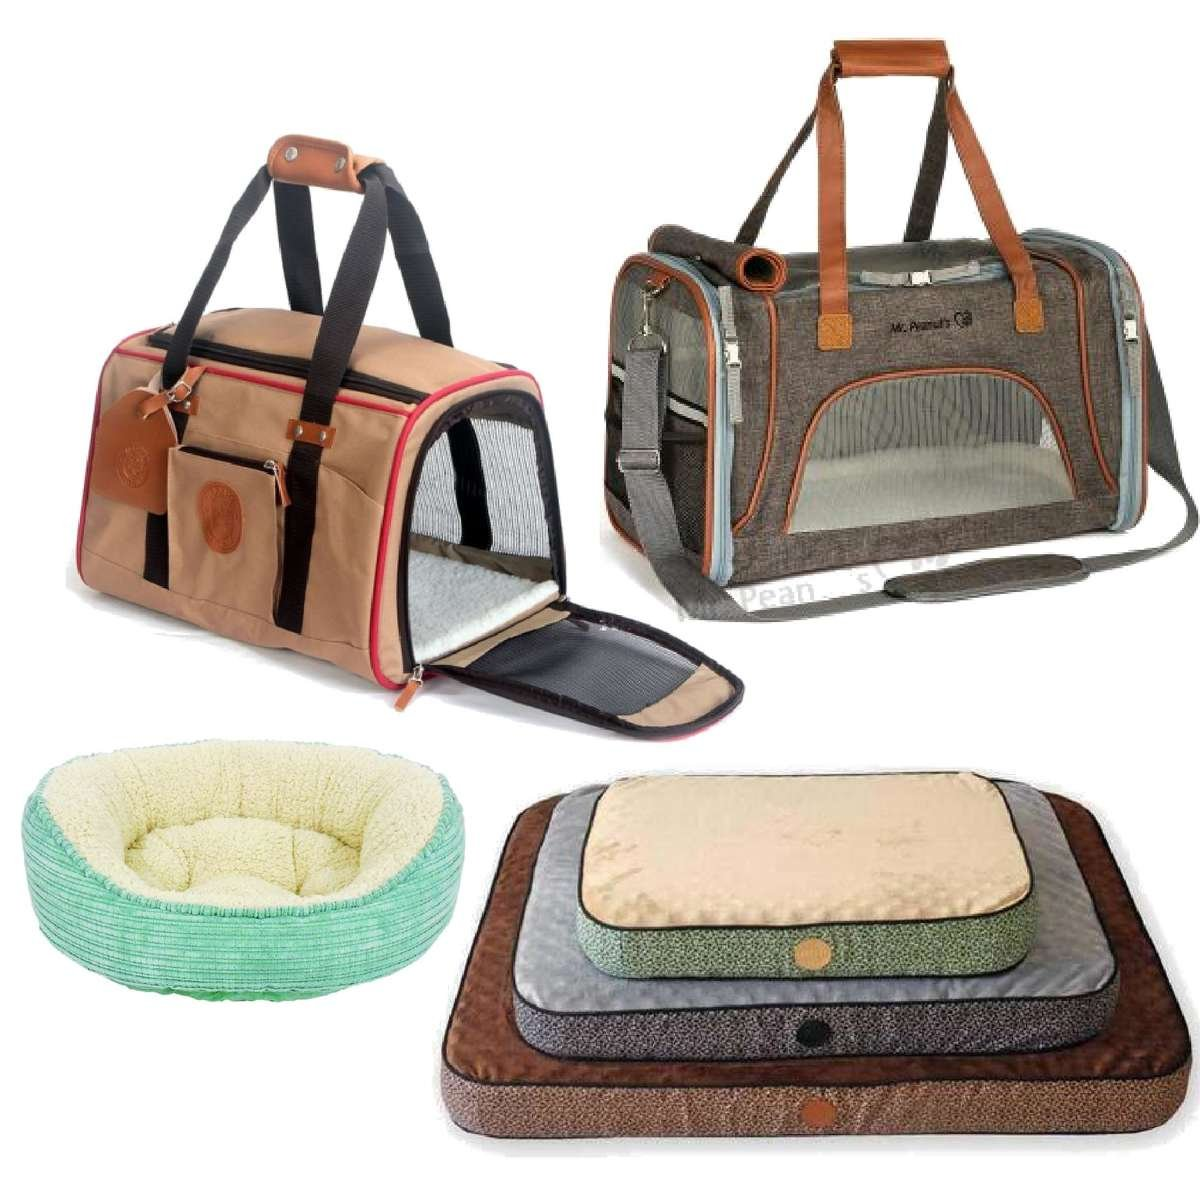 Shop Beds & Carriers